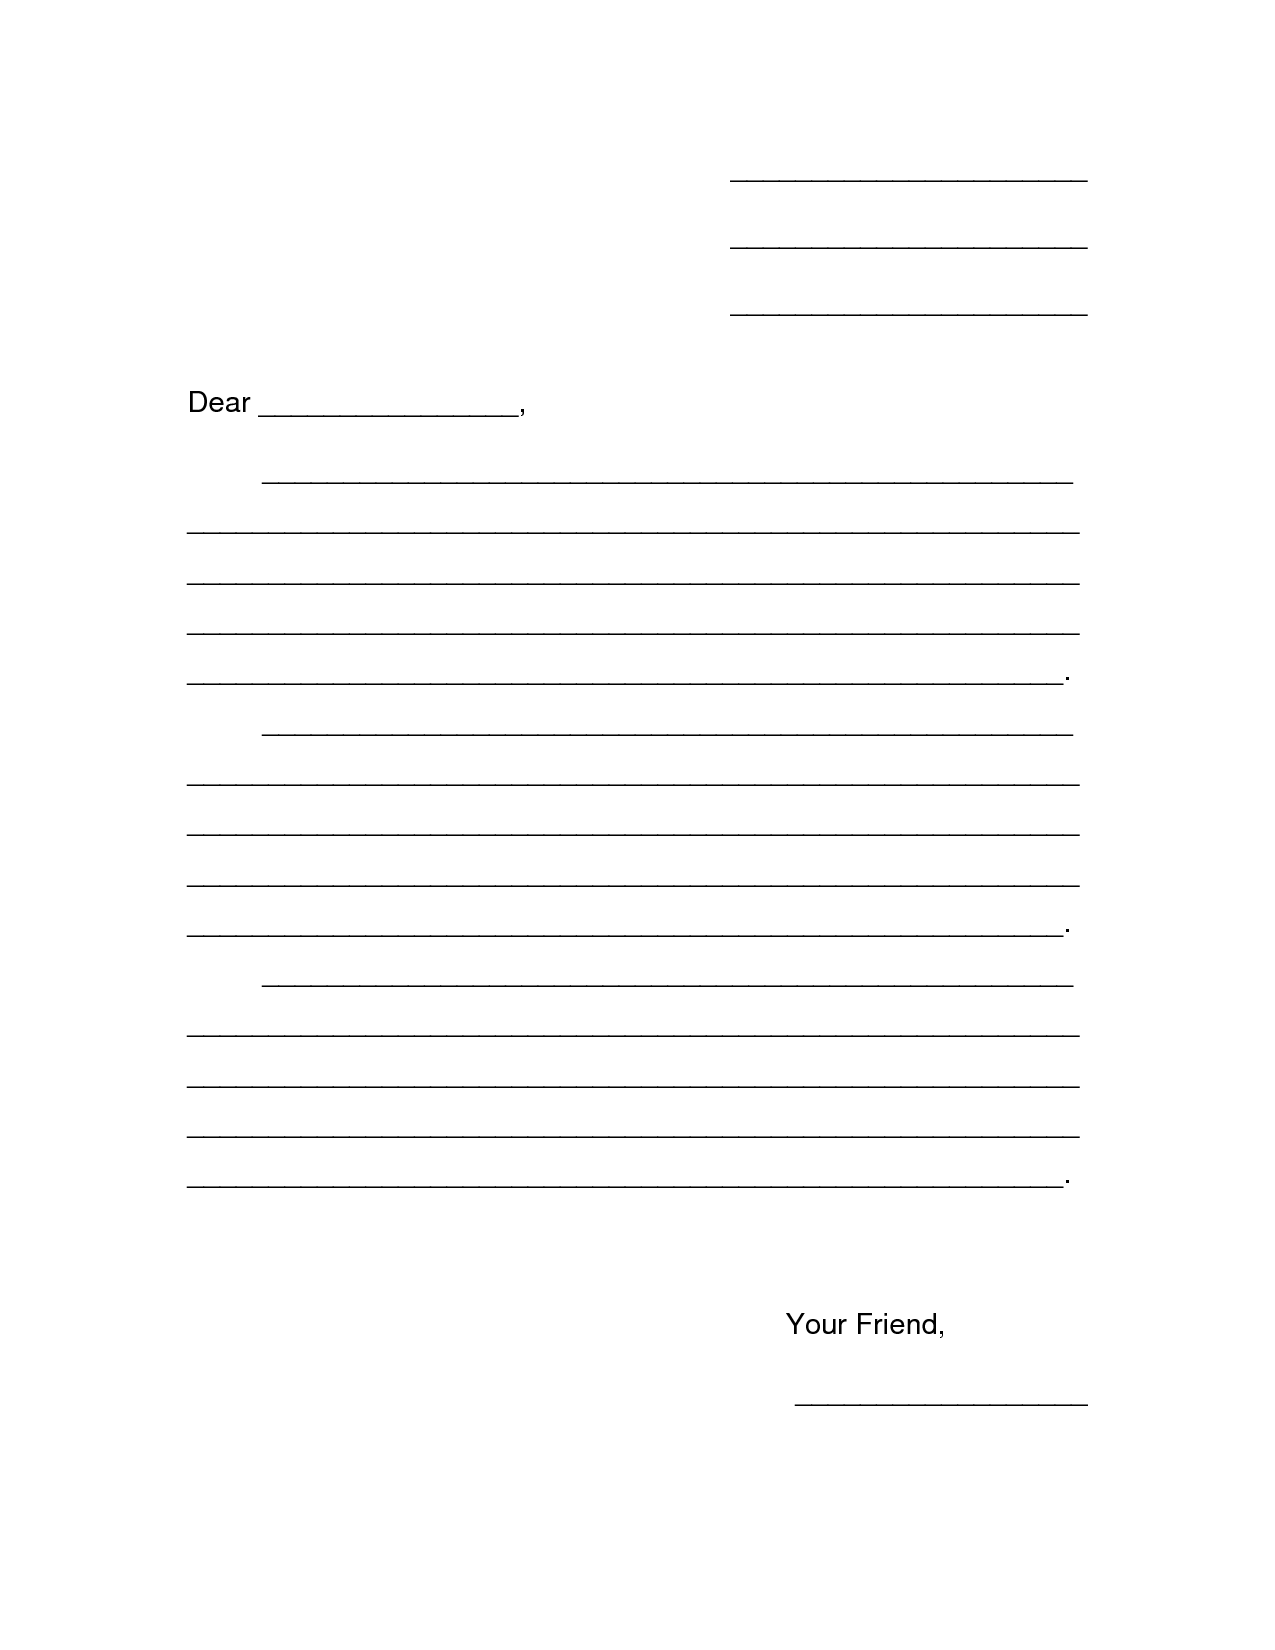 7 Images of Printable Friendly Letter-Writing Template